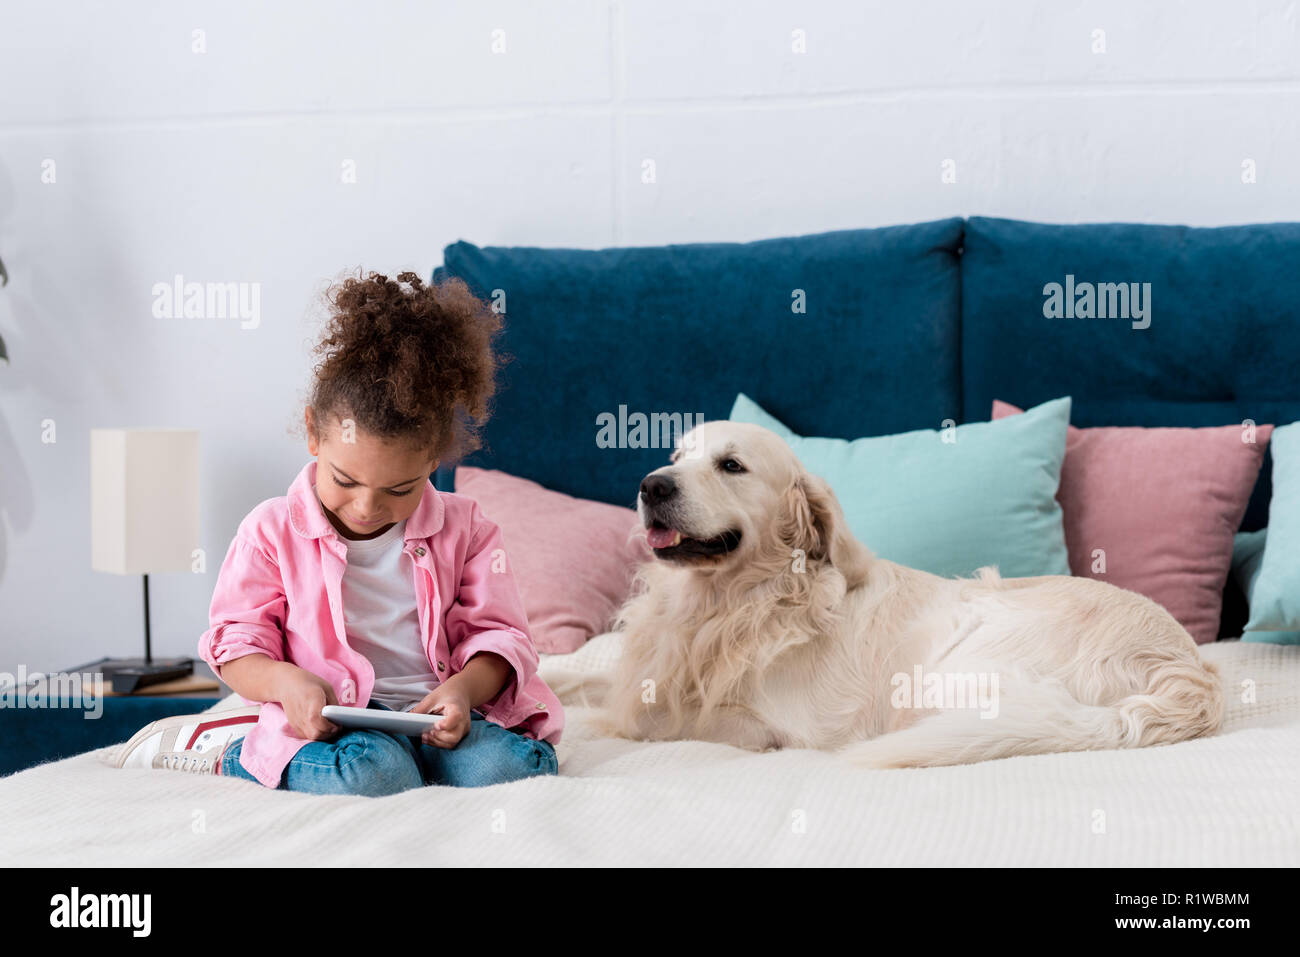 smiling african american kid sitting on the bed with golden retriever and playing with smartphone - Stock Image